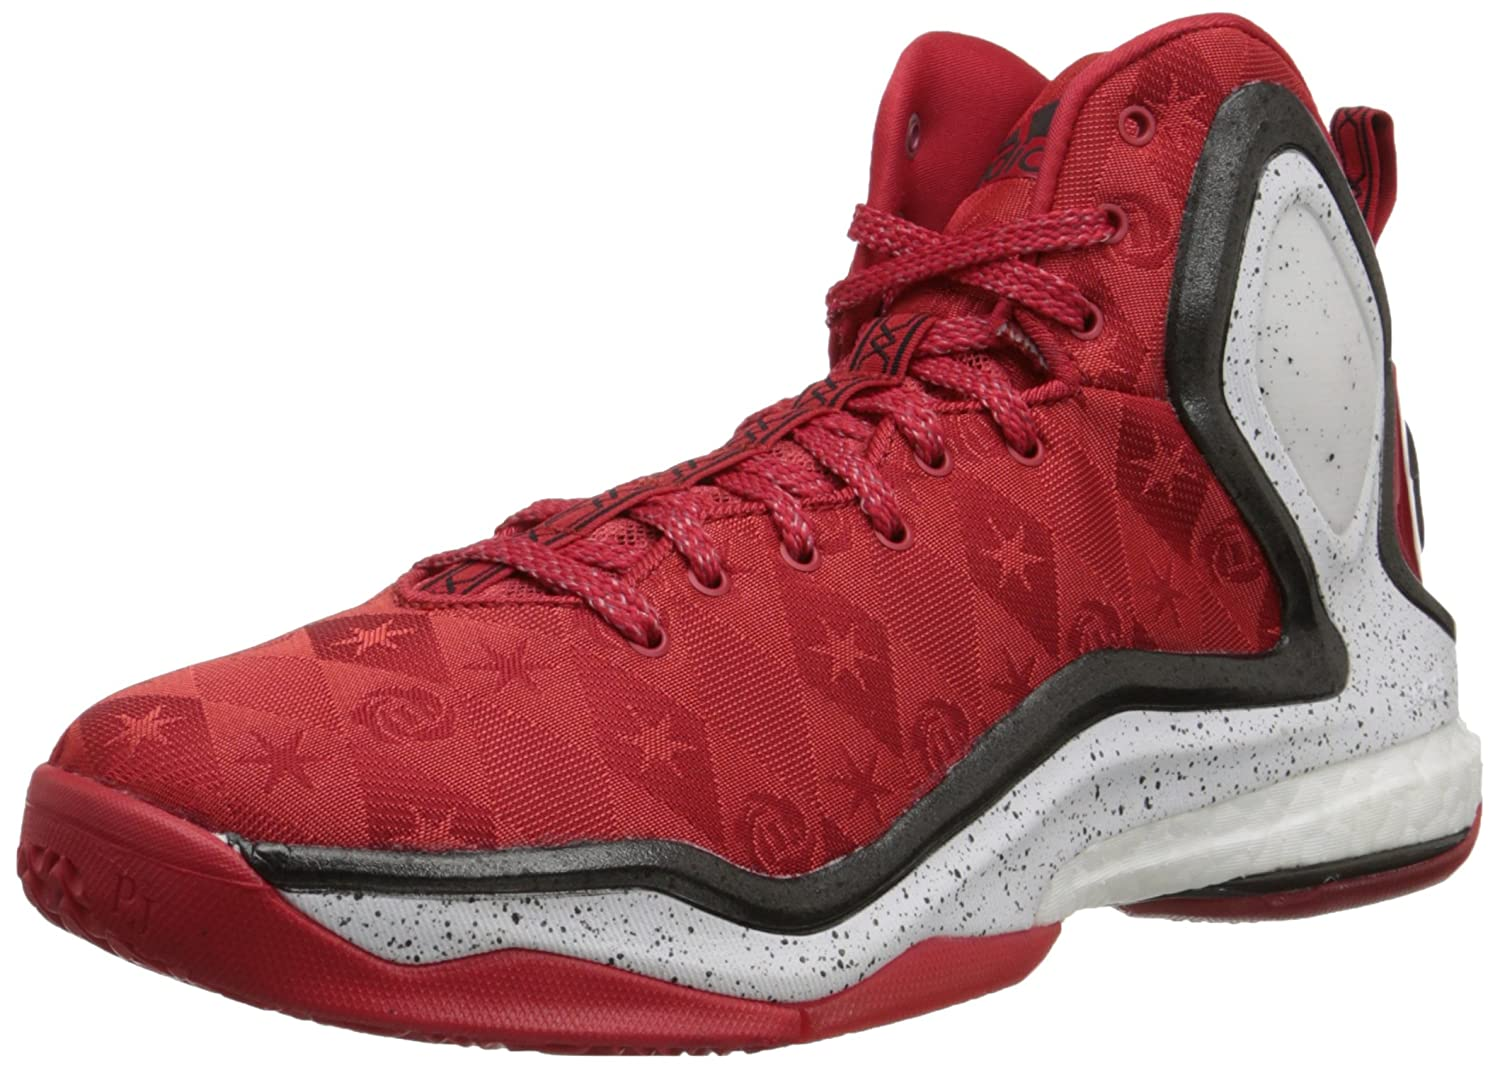 Adidas Basketball Shoes Boost